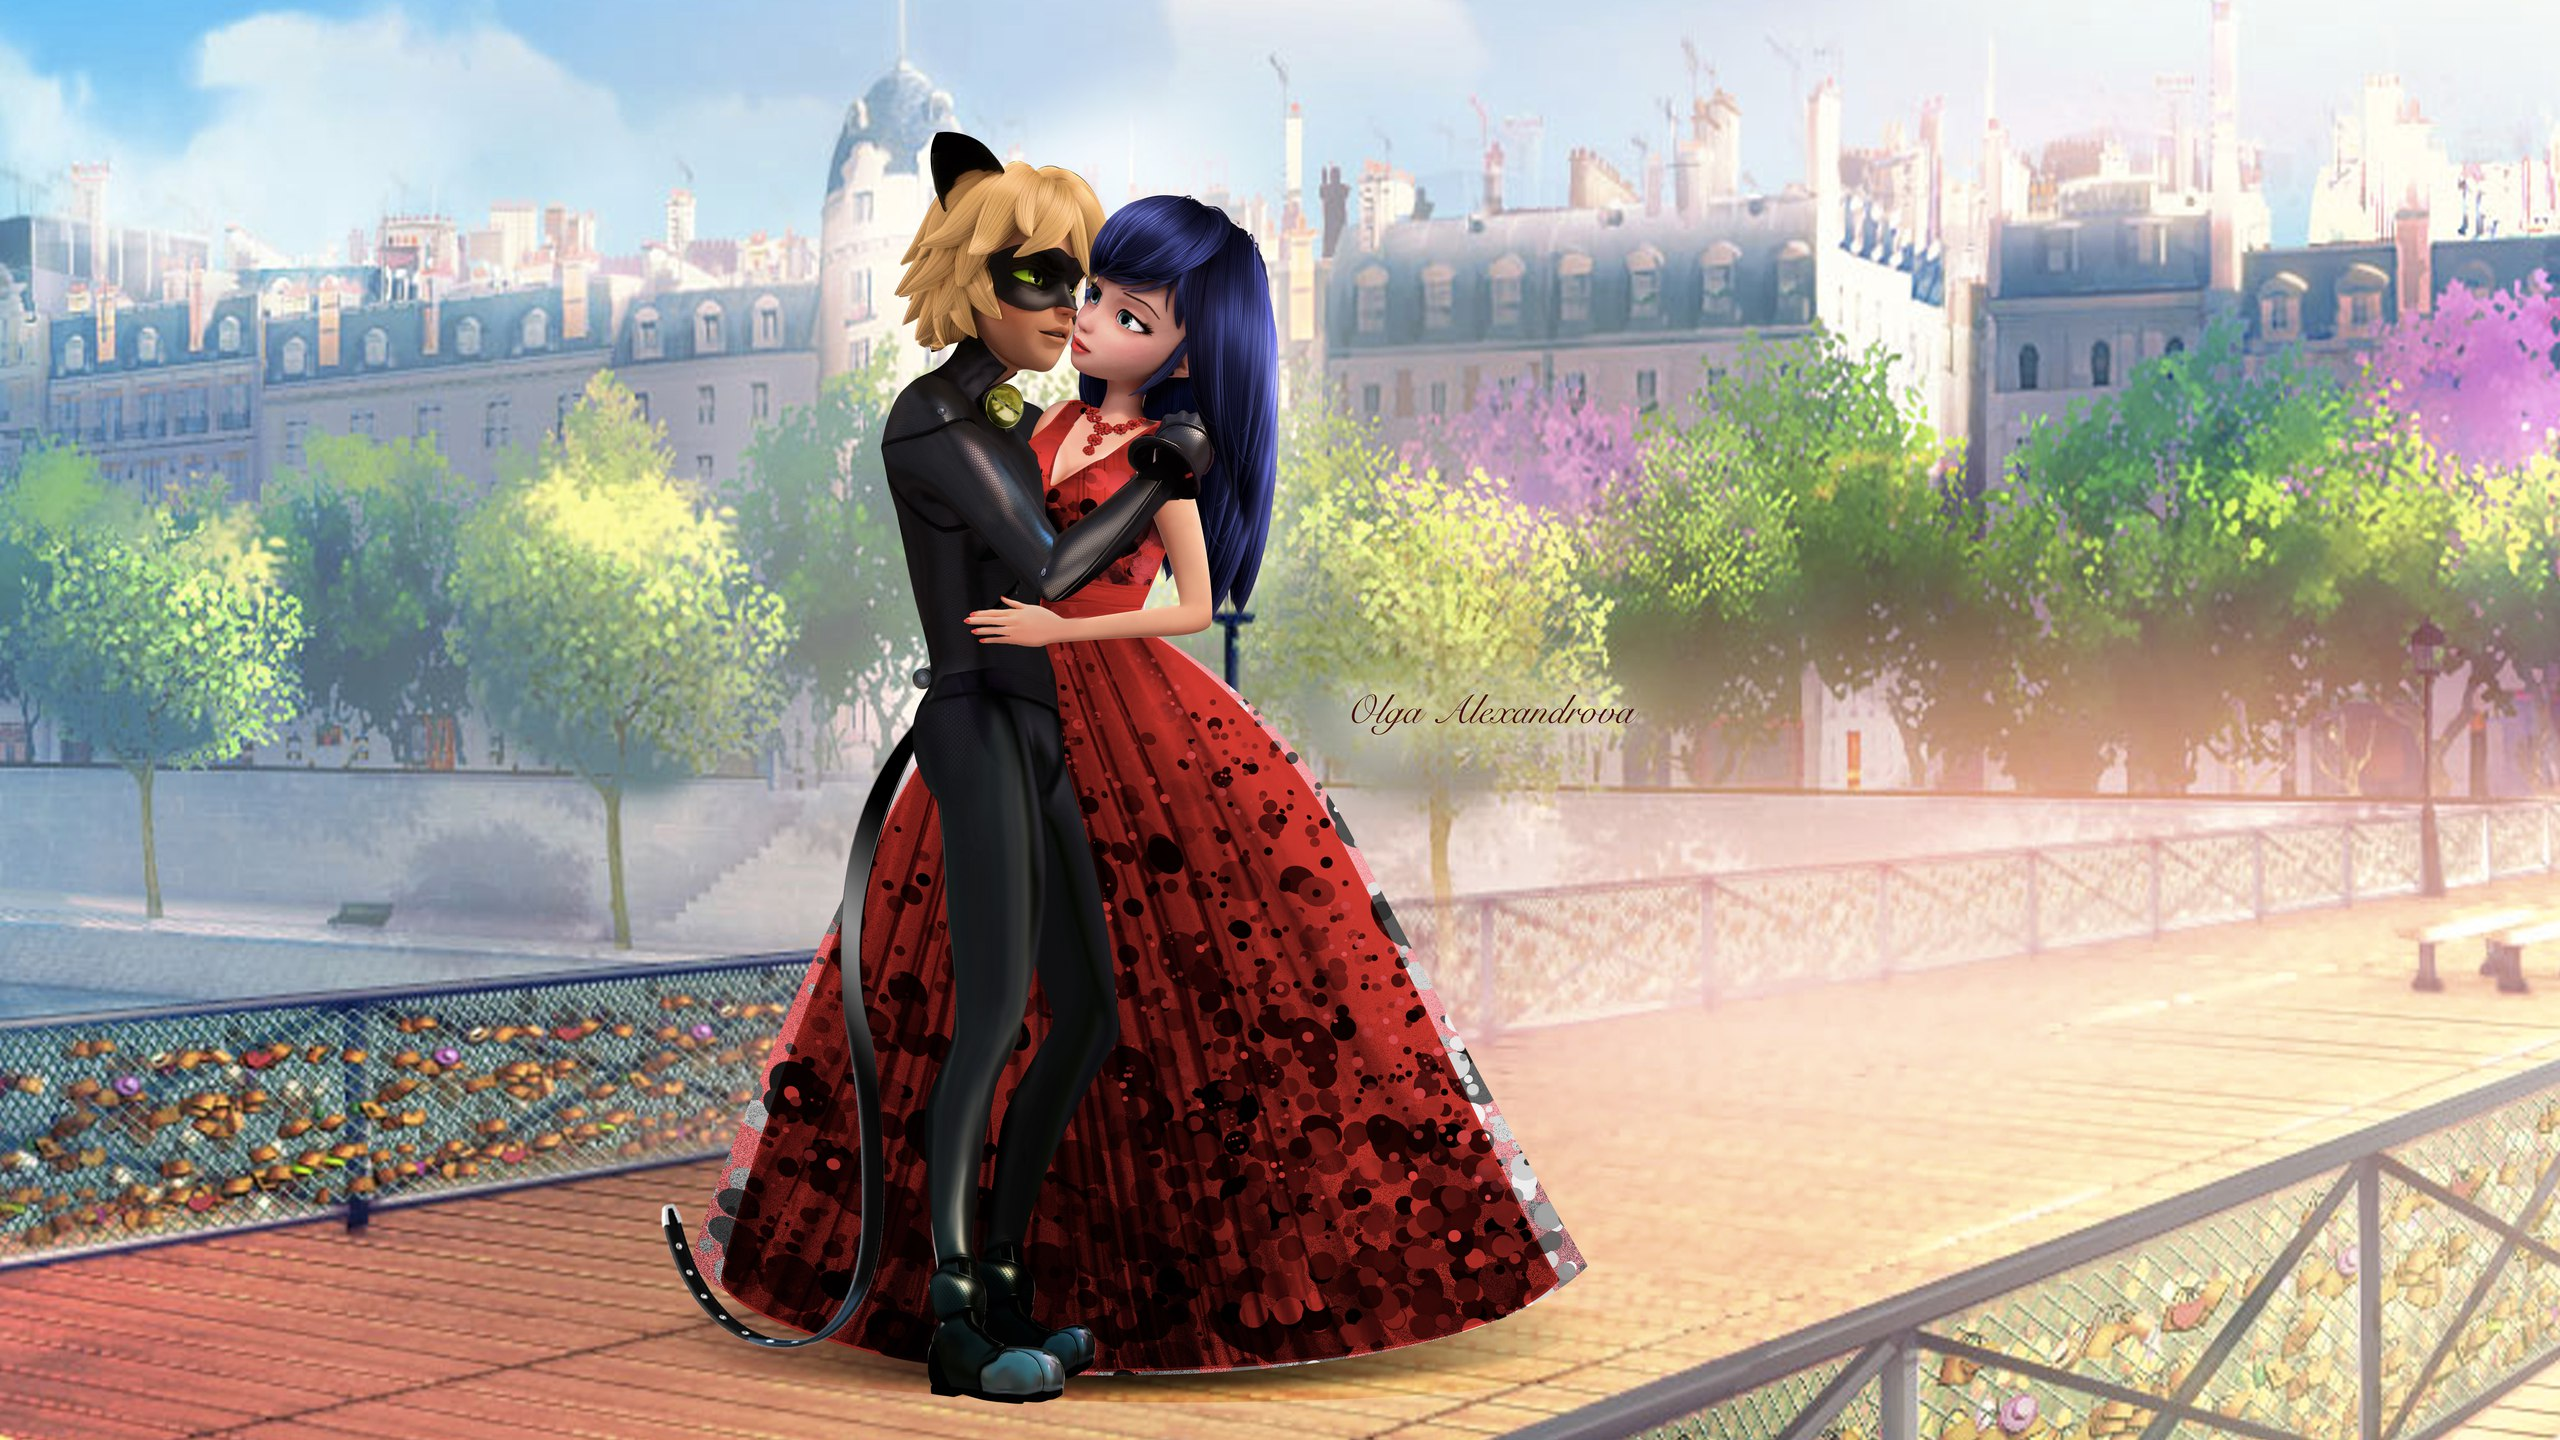 Miraculous Ladybug Romantic Fan Art Youloveit Com